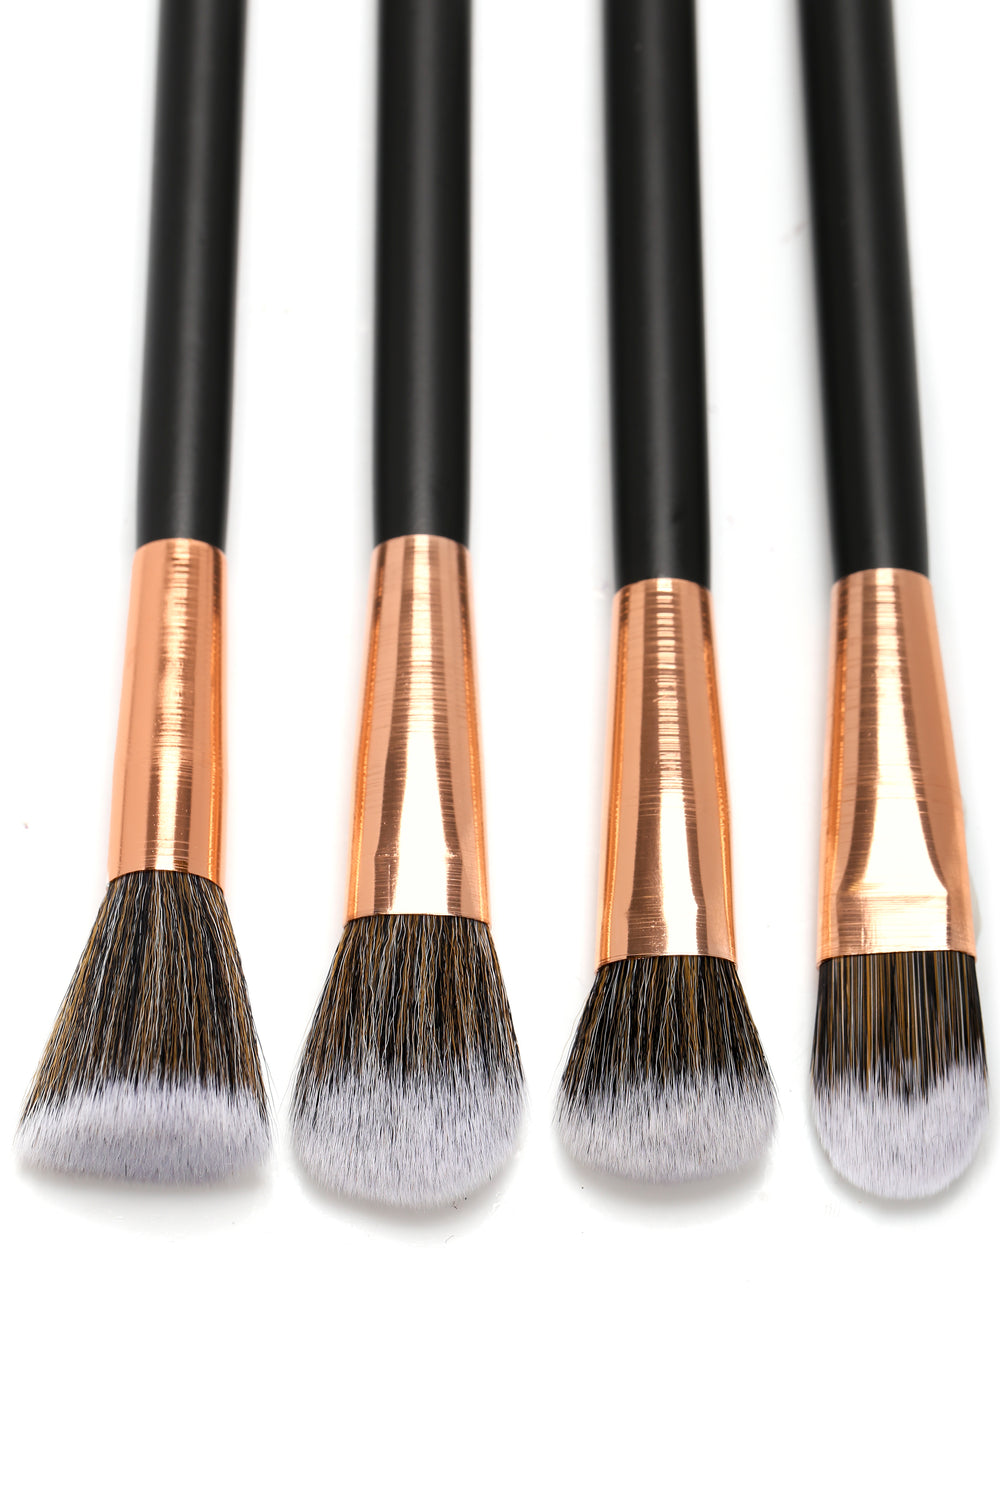 Bebella Cosmetics 13 Pc Brush Set - Rose Gold